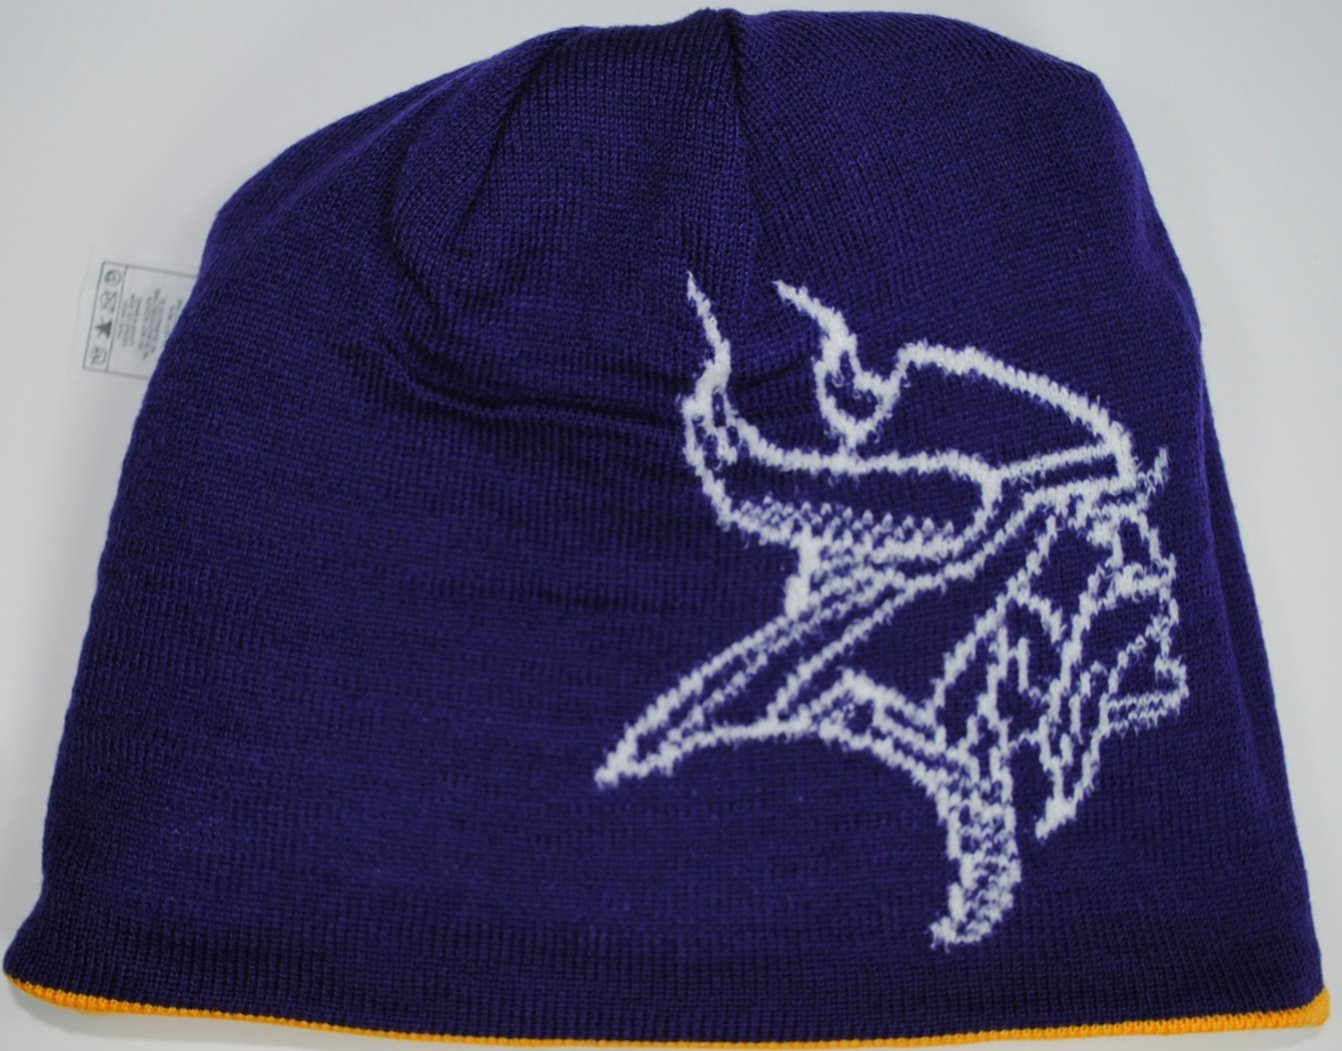 Minnesota Vikings Reversible Team Color Knit Beanie Hat ботинки meindl meindl minnesota pro женские